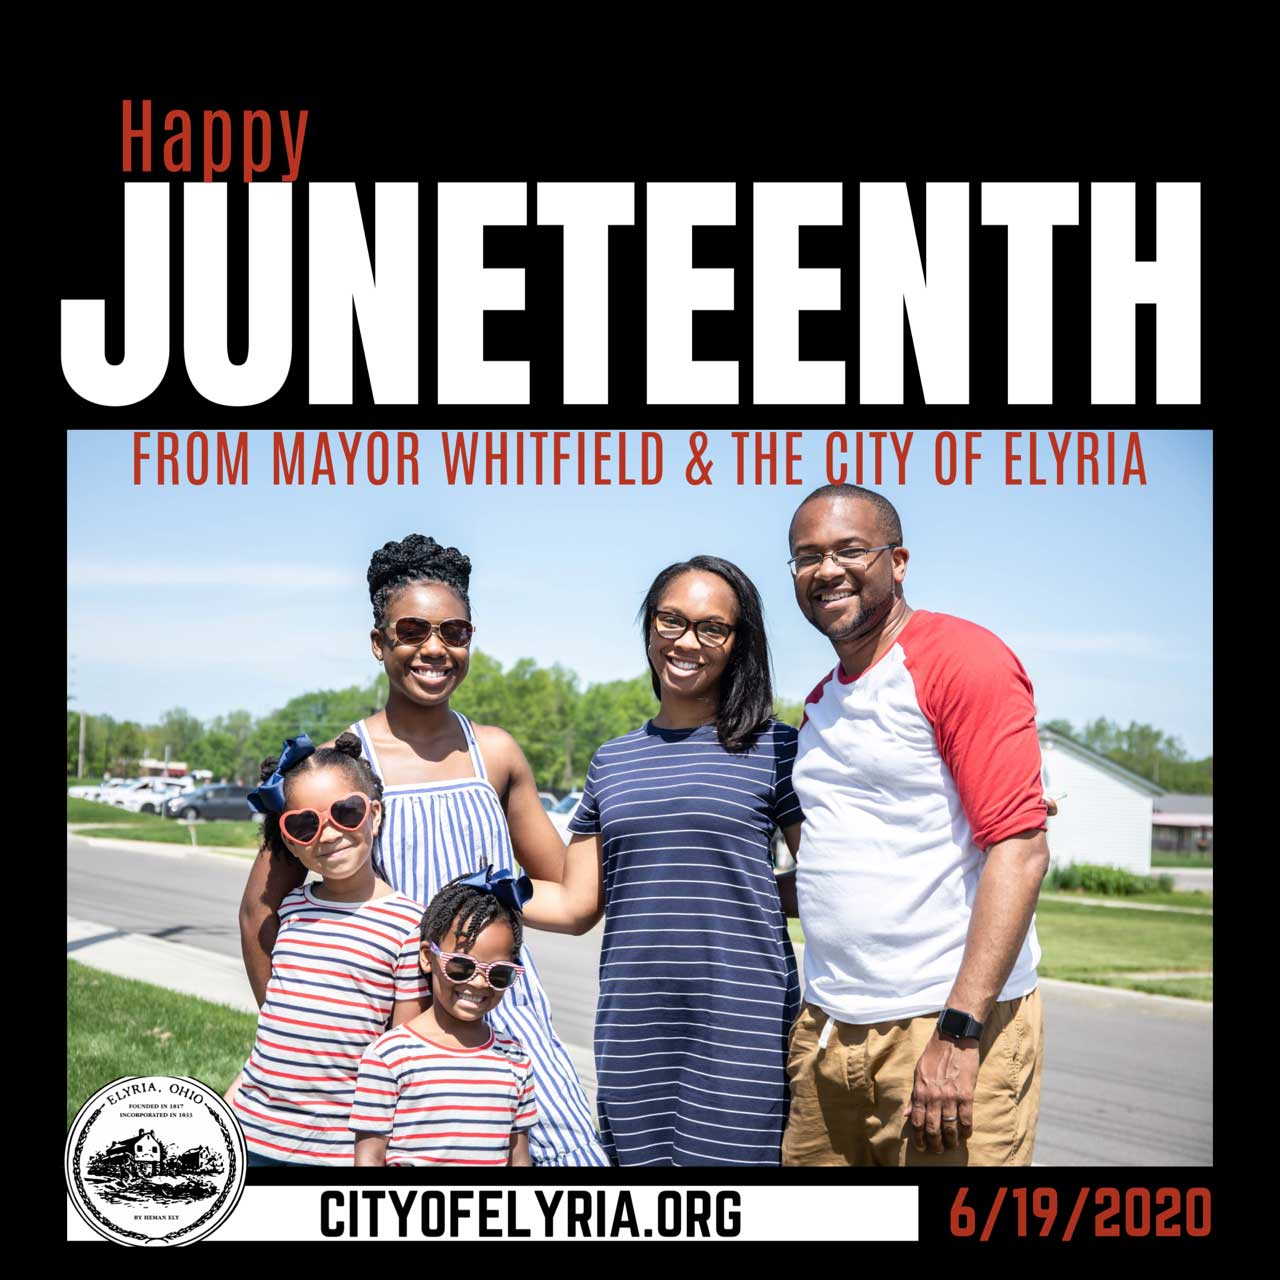 happy juneteenth from mayor whitfield